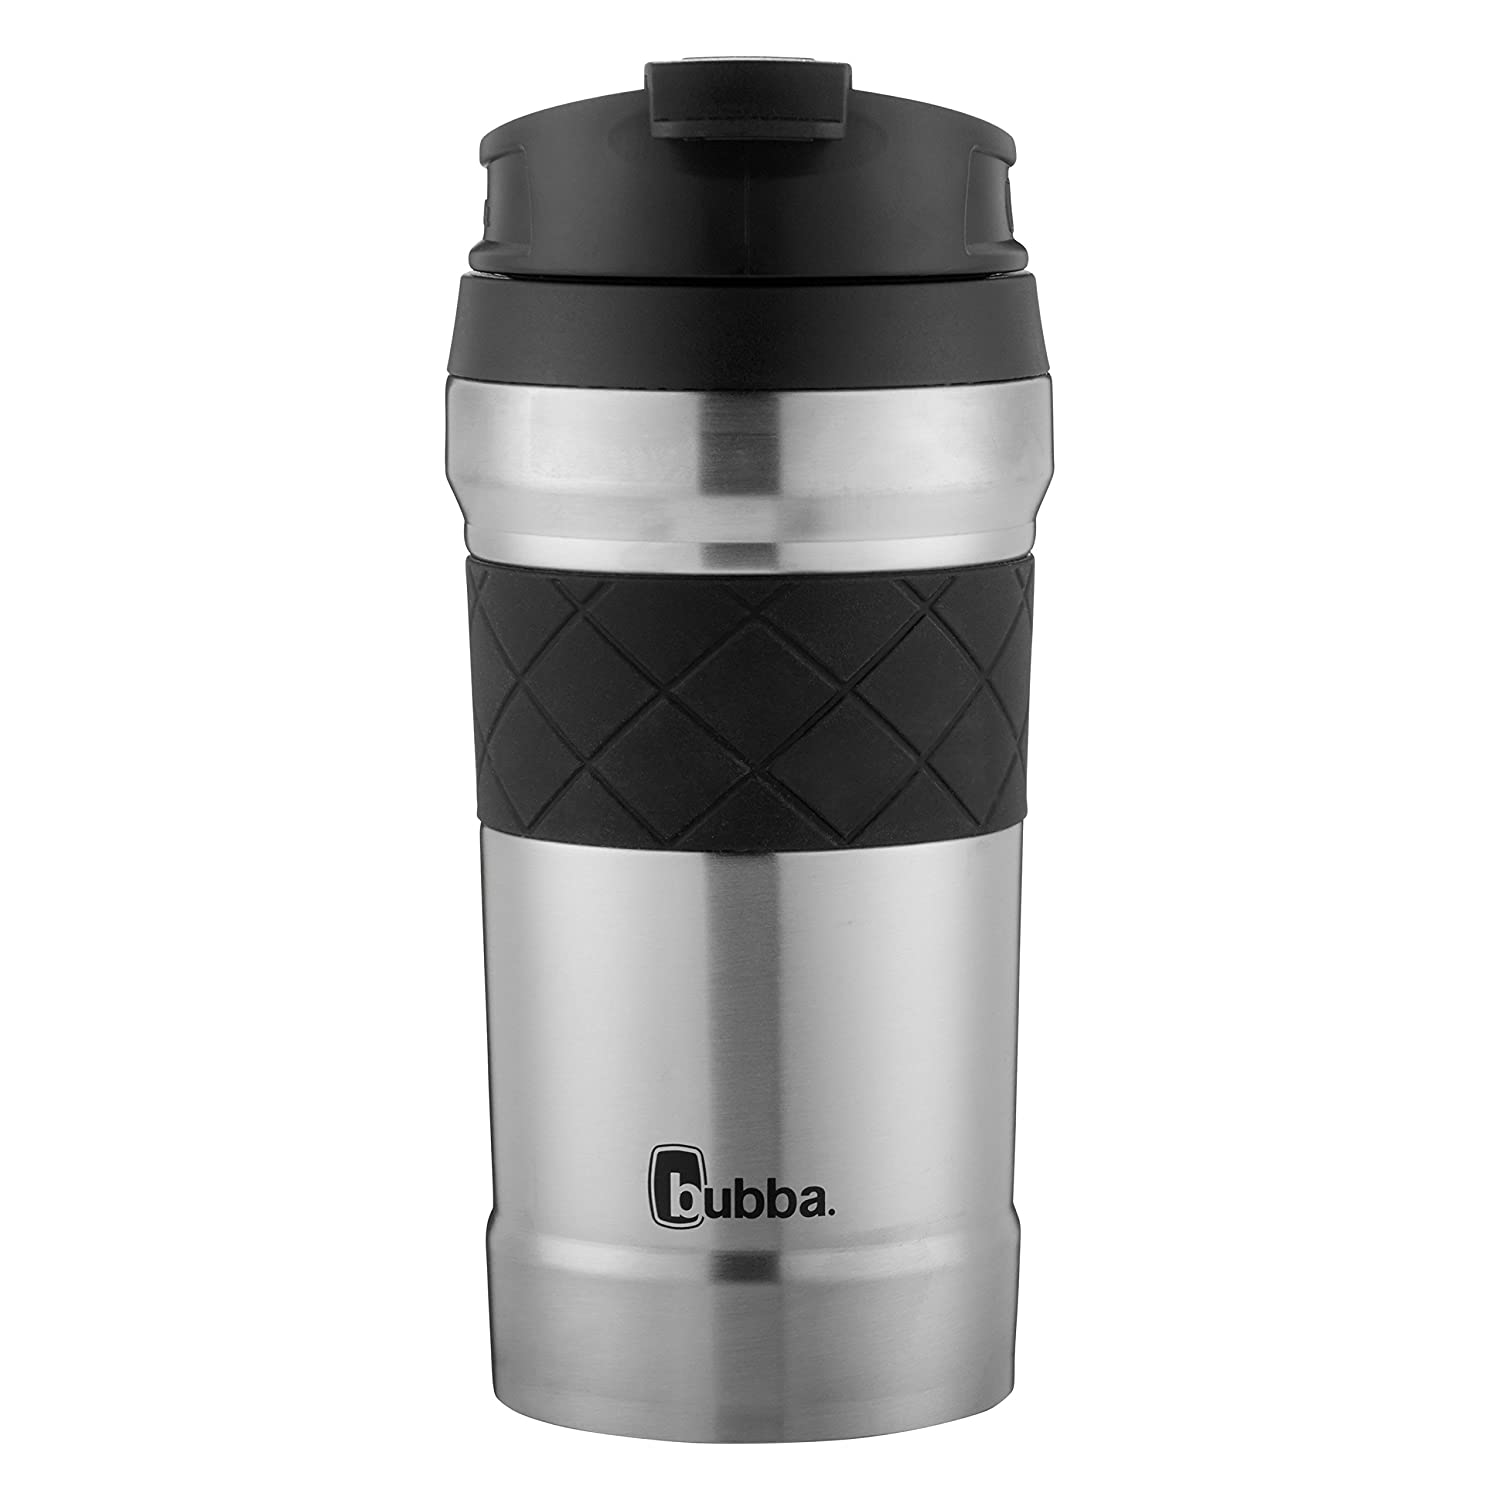 Bubba HERO Elite Vacuum-Insulated Stainless Steel Travel Mug with TasteGuard, 12 oz, Sliver